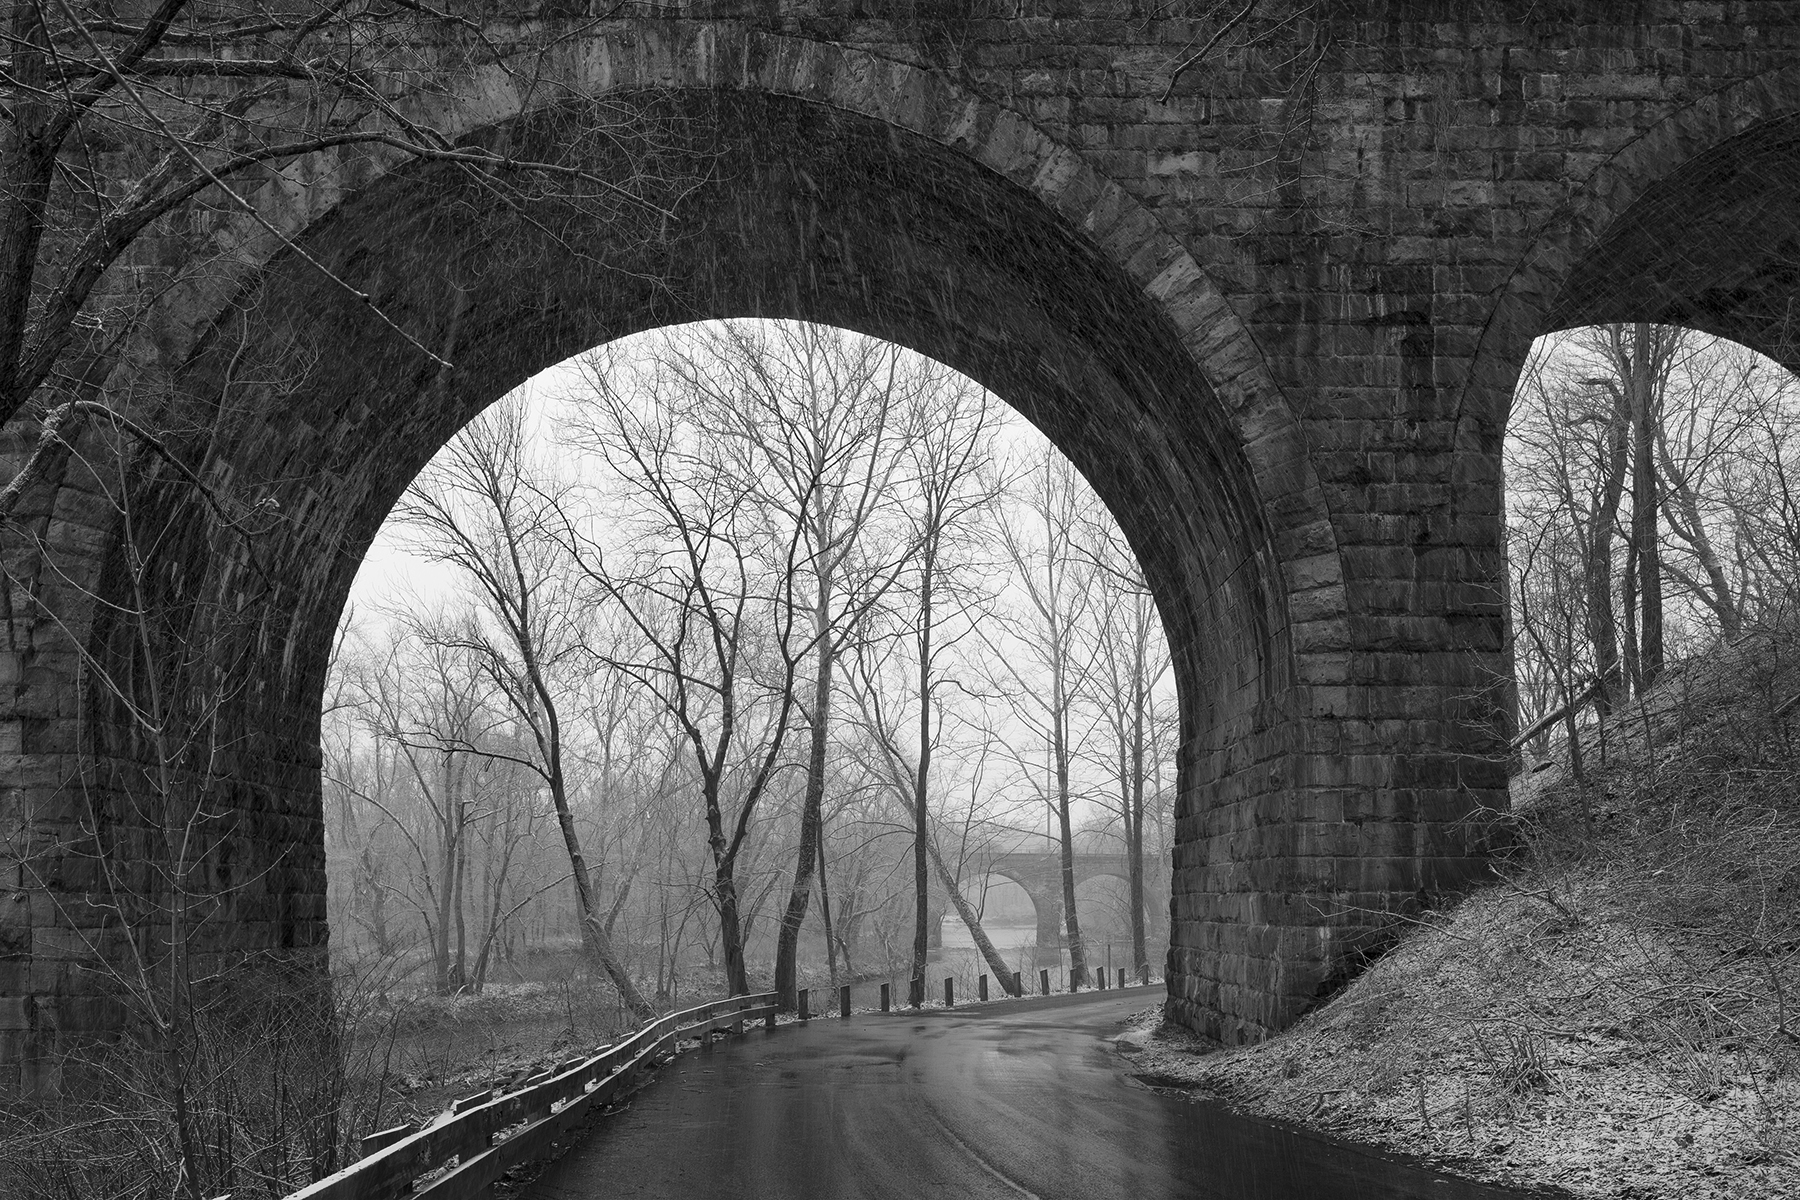 Stone bridges crossing the Neshaminy Creek, Pennsylvania Railroad Trenton Cut-Off, part of the Low Grade Freight Line between Morrisville and Enola, Pennsylvania. Join me March 14th to learn how historical imagery inspires new works in my ongoing project documenting the former Pennsylvania Railroad and the landscape it travels.